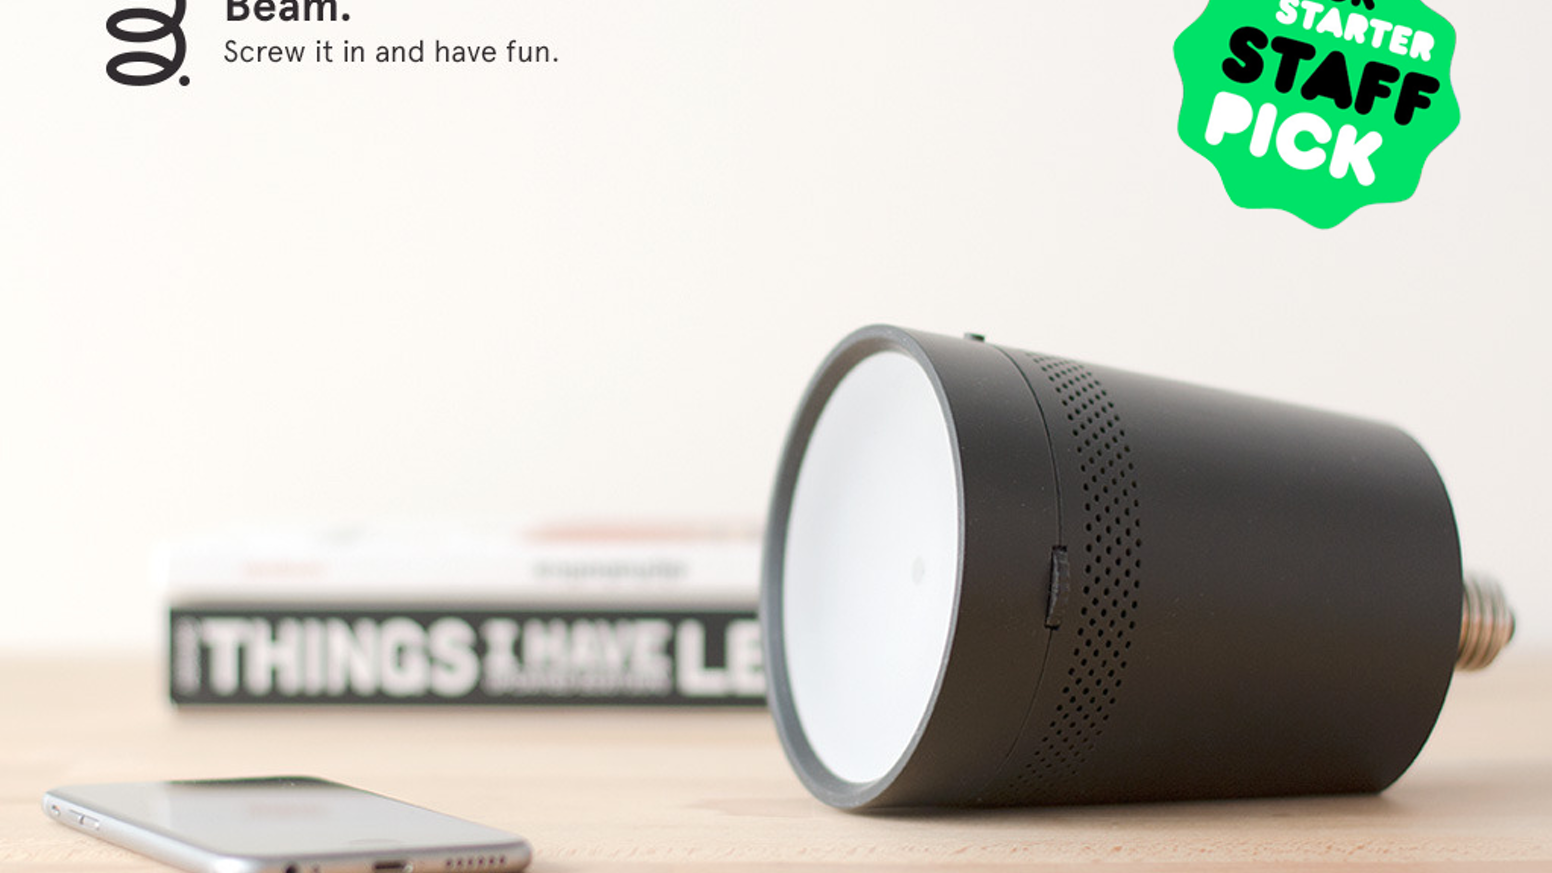 The smart projector that assists you in your daily activities, controlled with your smartphone or tablet. Screw it in and have fun!